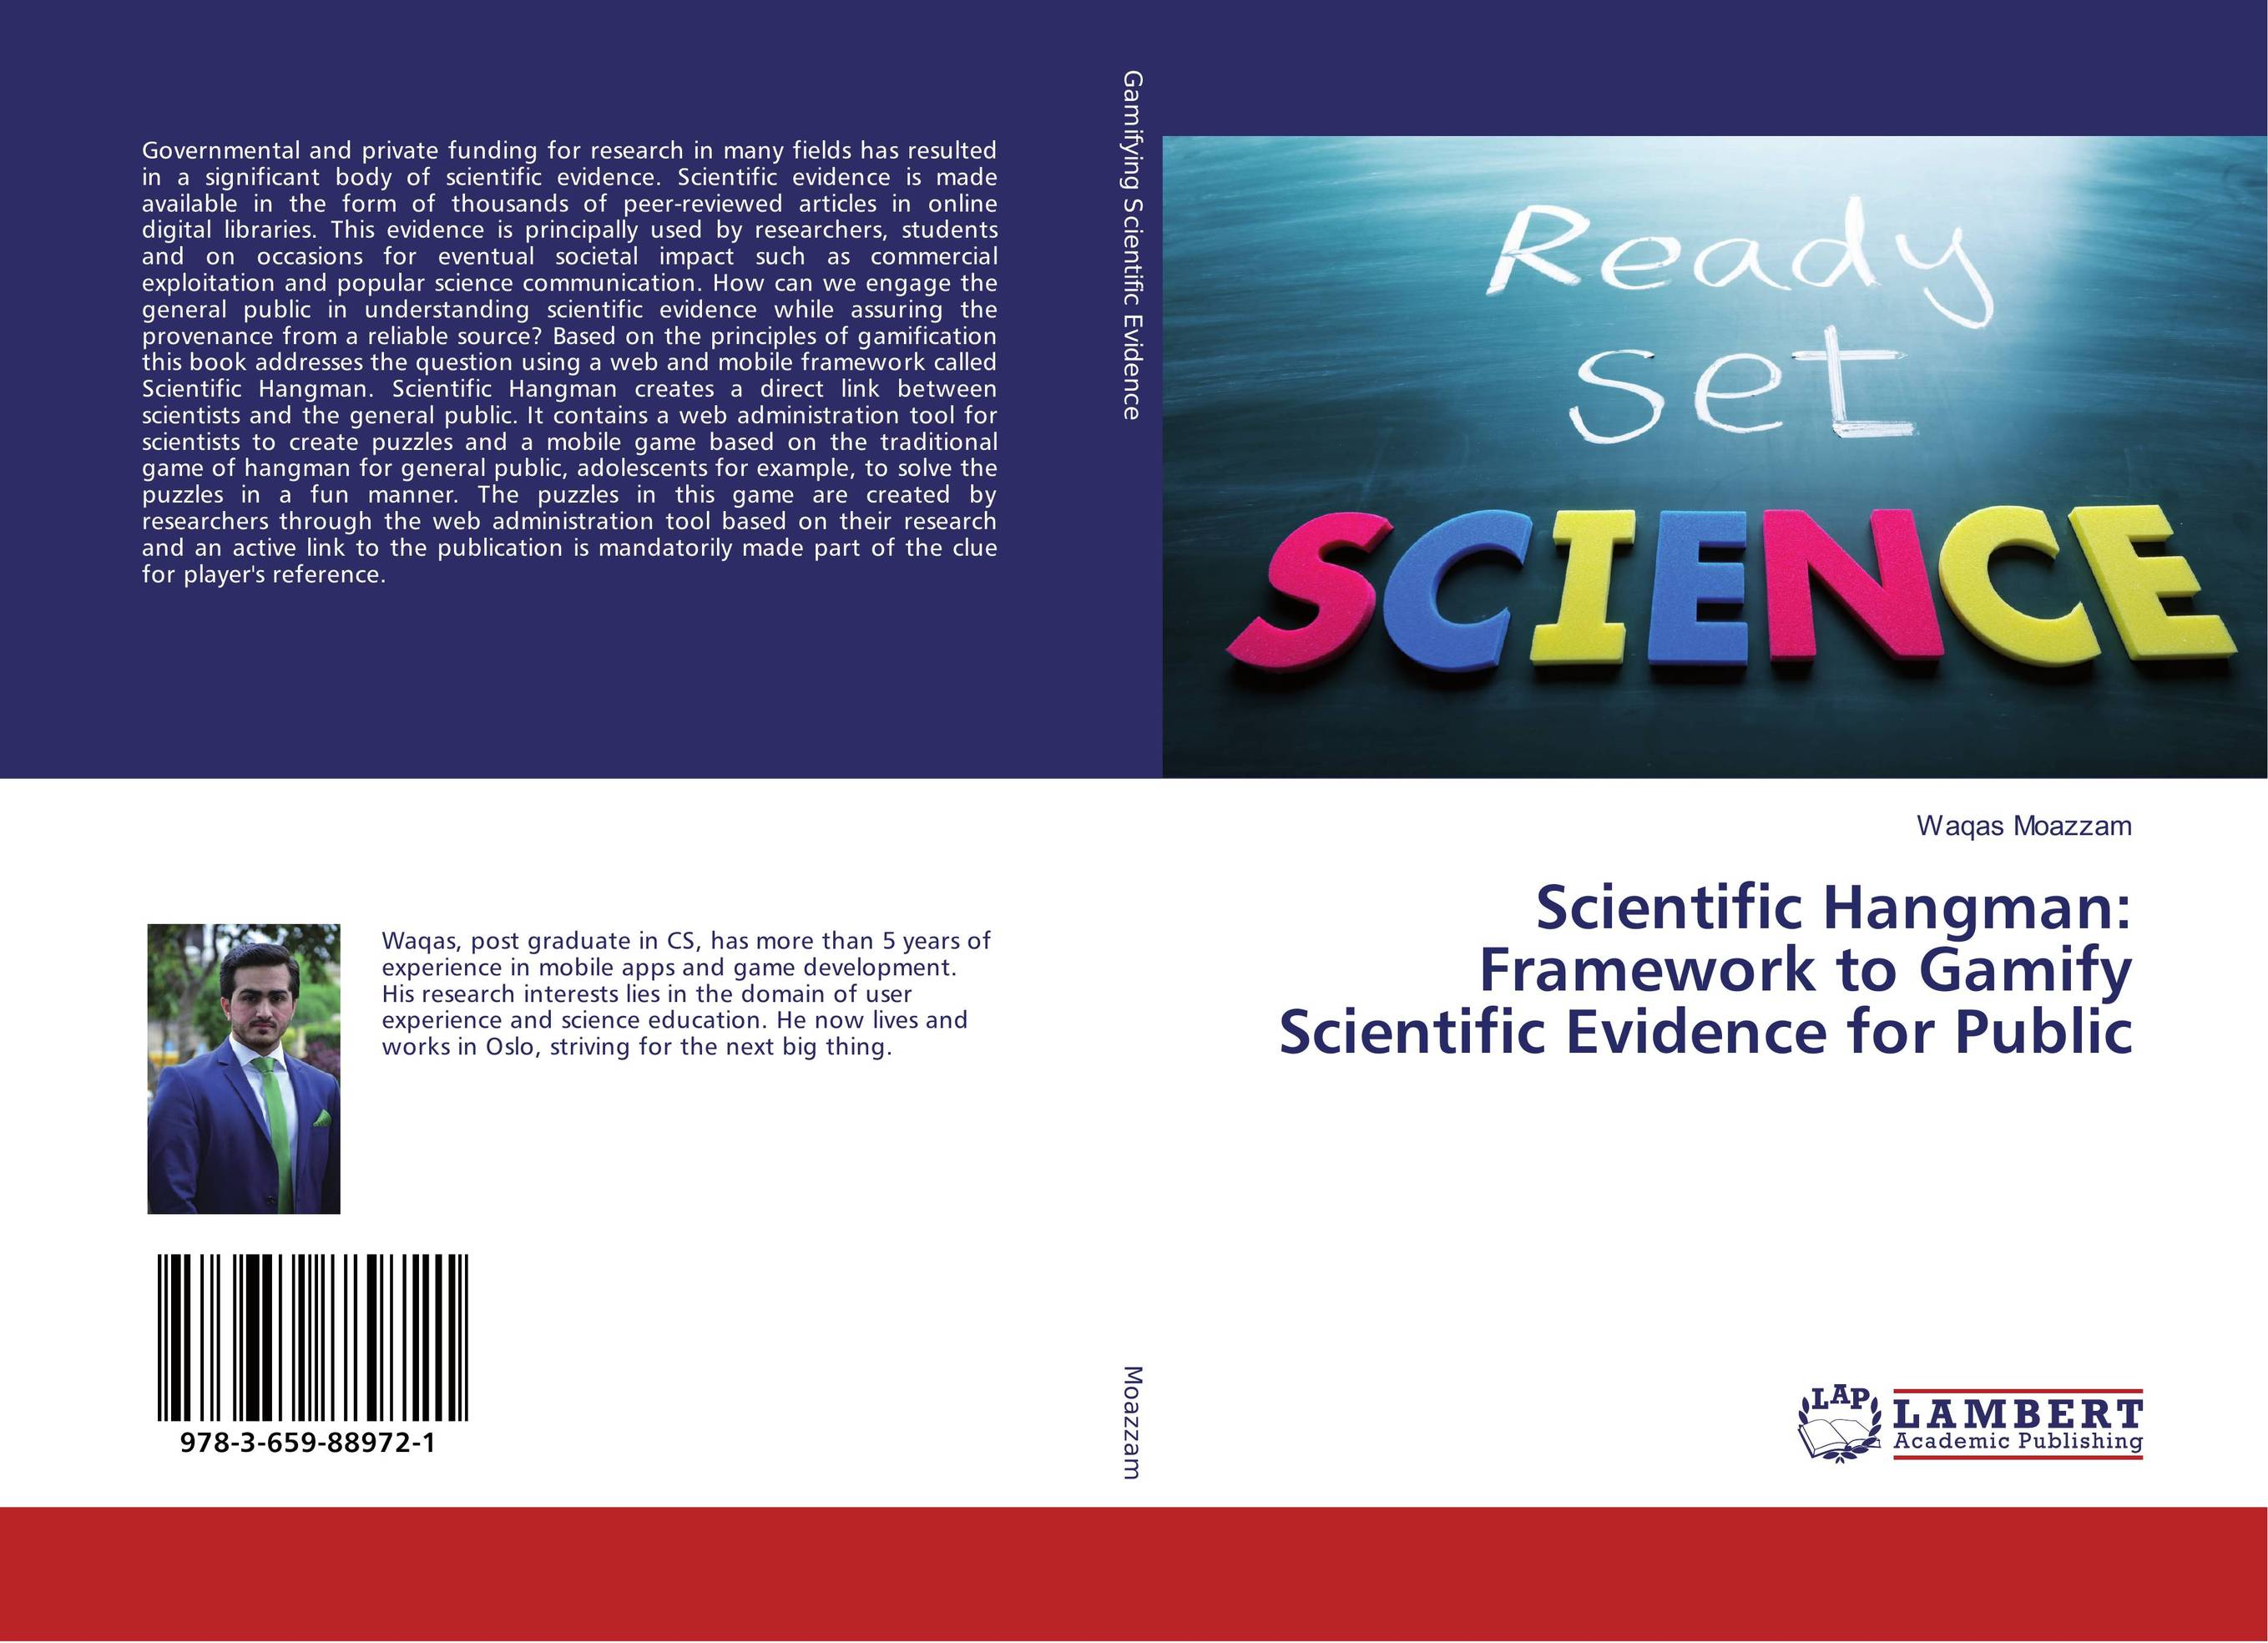 Scientific Hangman: Framework to Gamify Scientific Evidence for Public year of the hangman